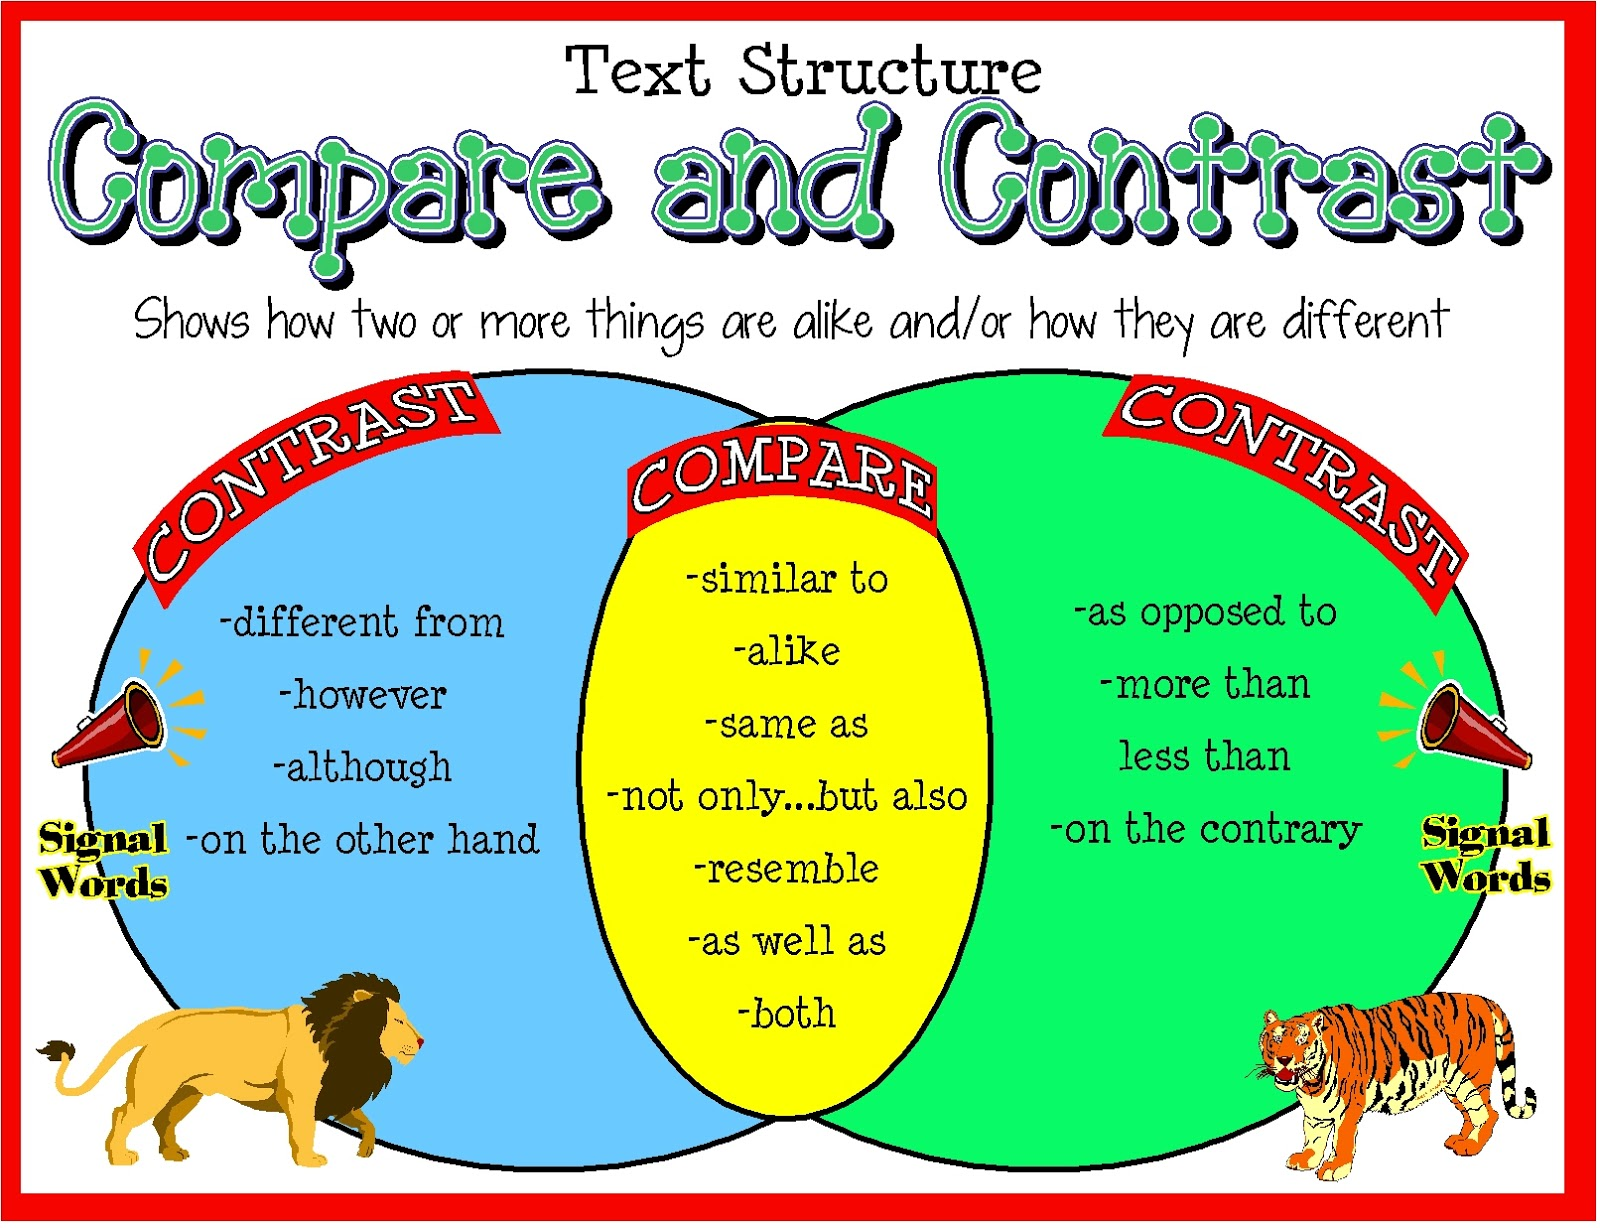 a discourse approach in reading